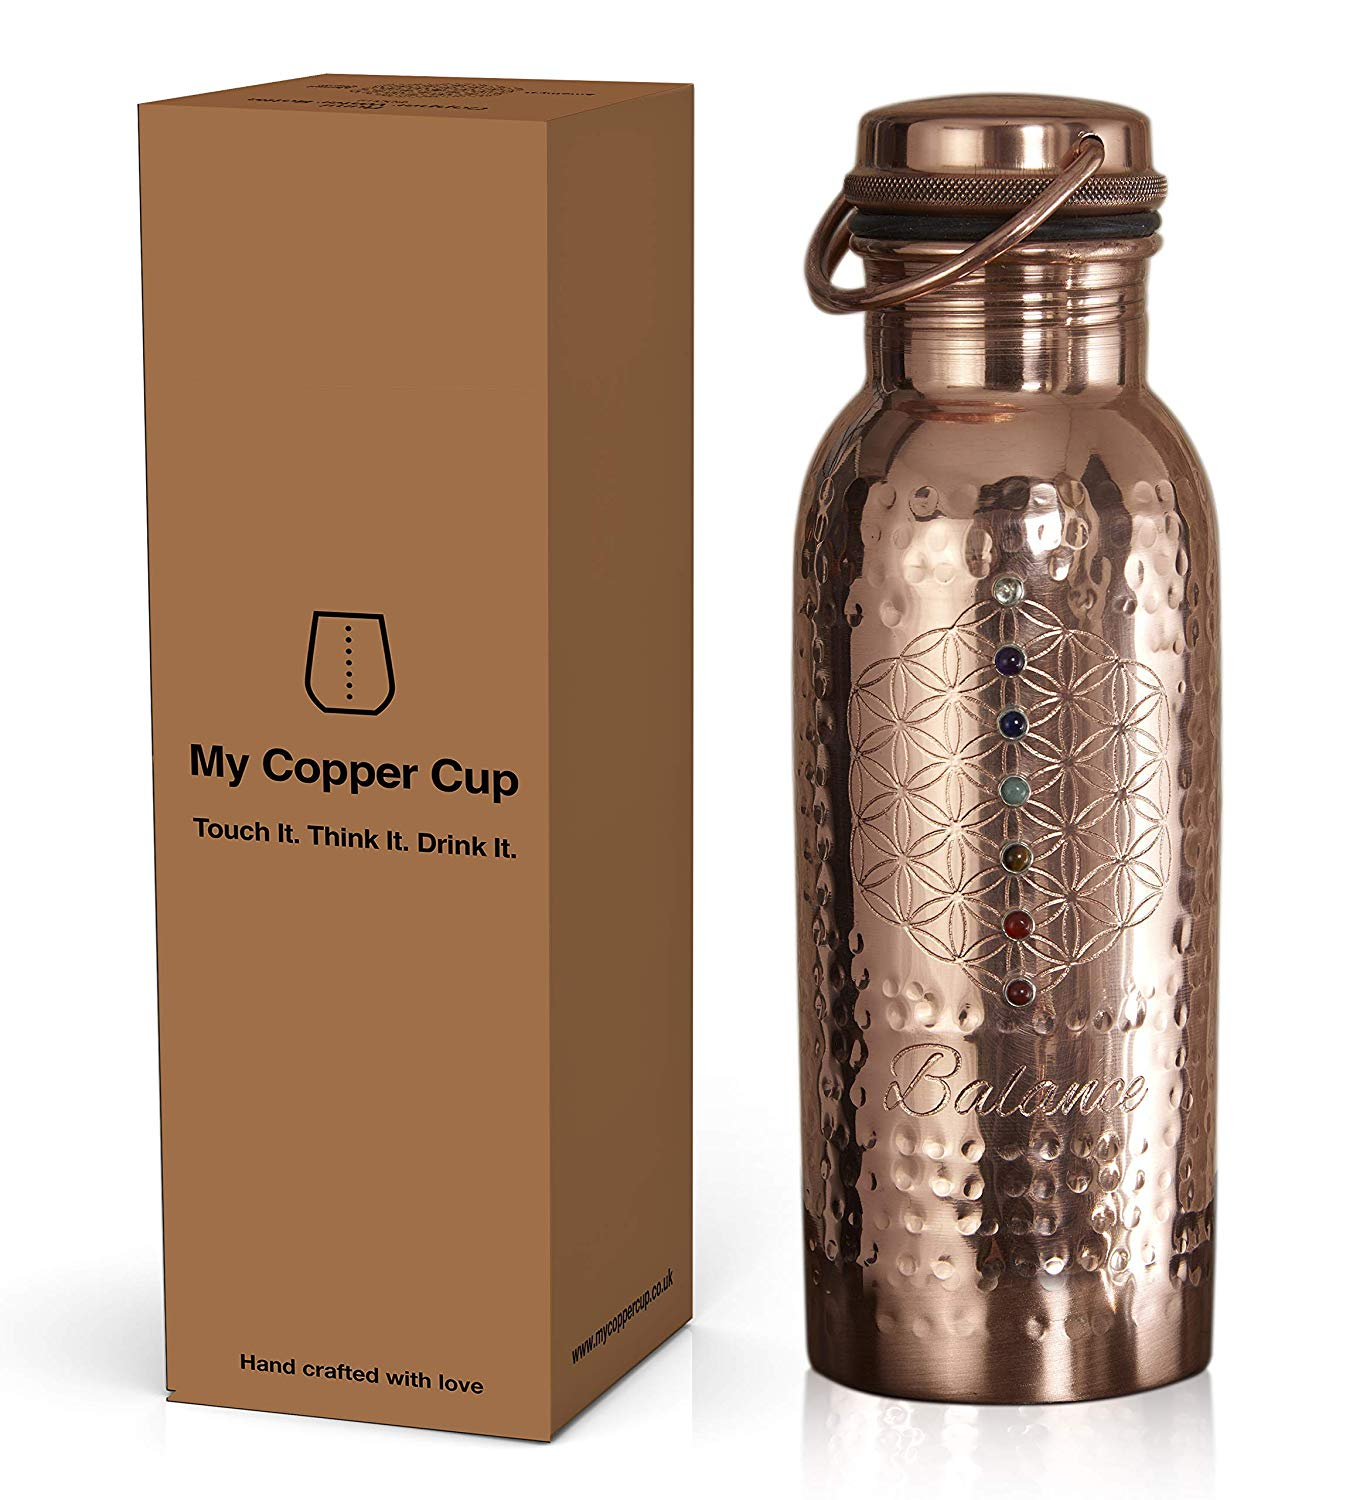 My Copper Cup 100% Pure Copper Leakproof Water Bottle